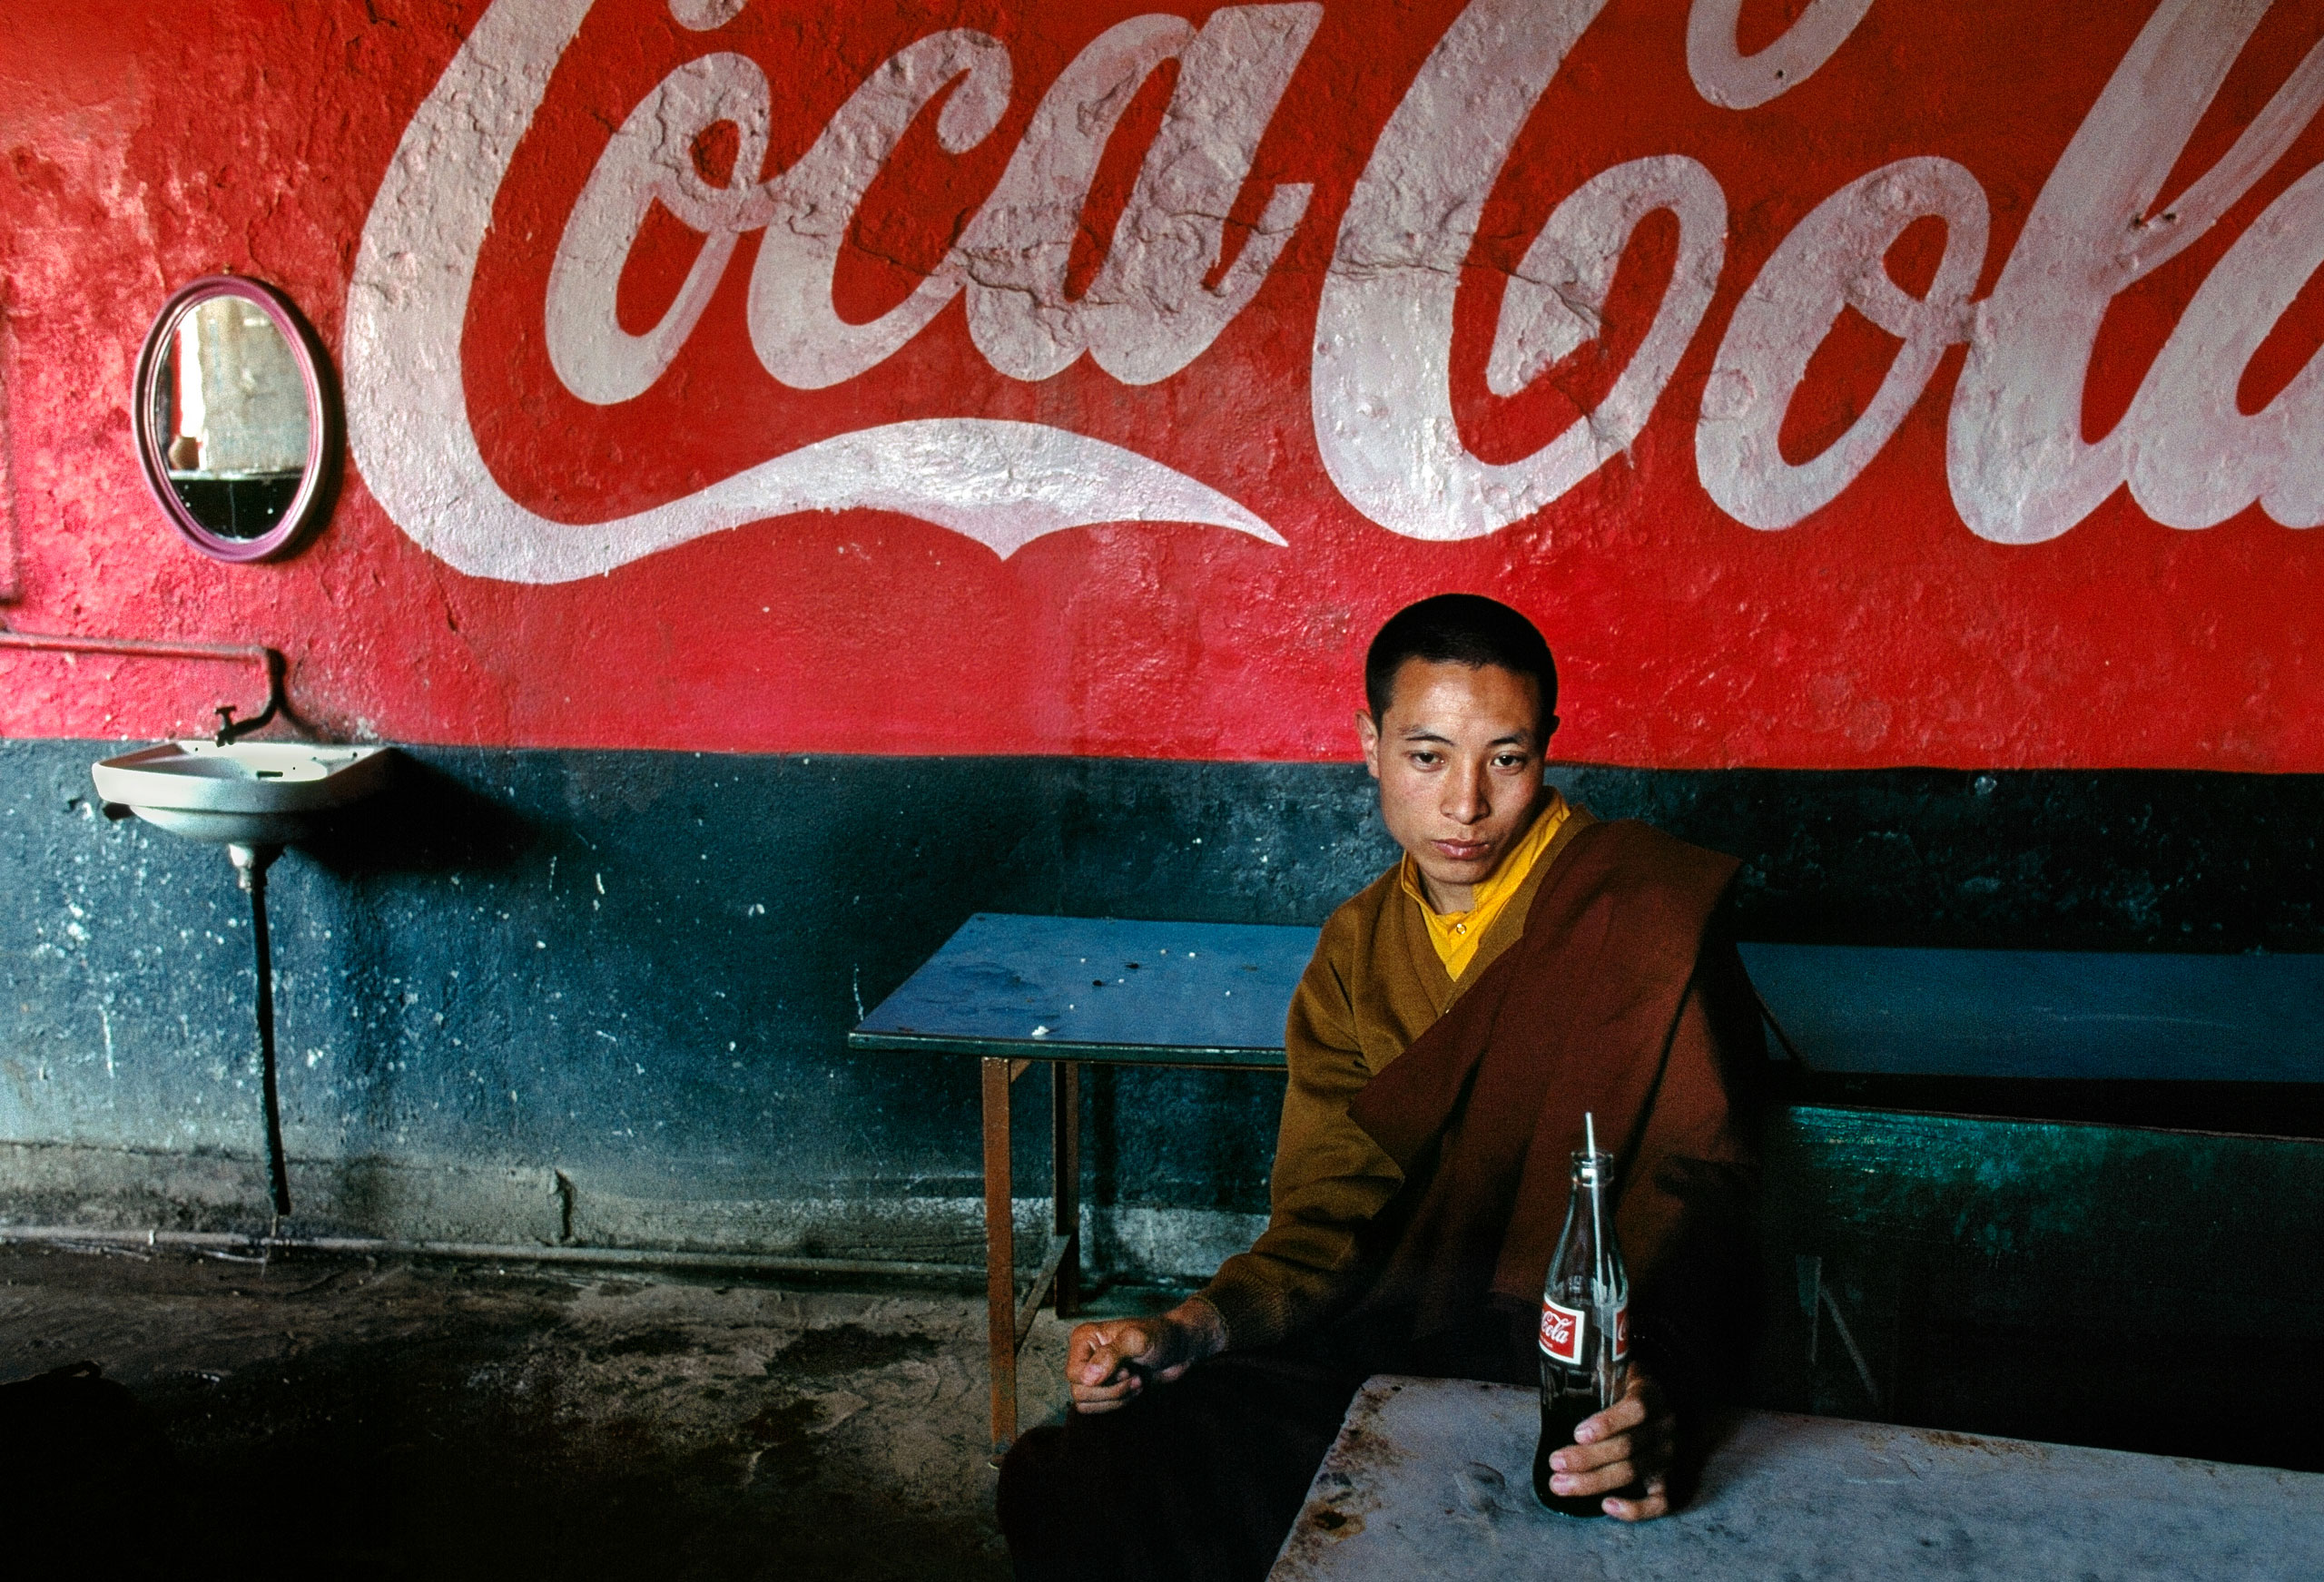 Monk in a food stall. Bodh Gaya, Bihar, 2000